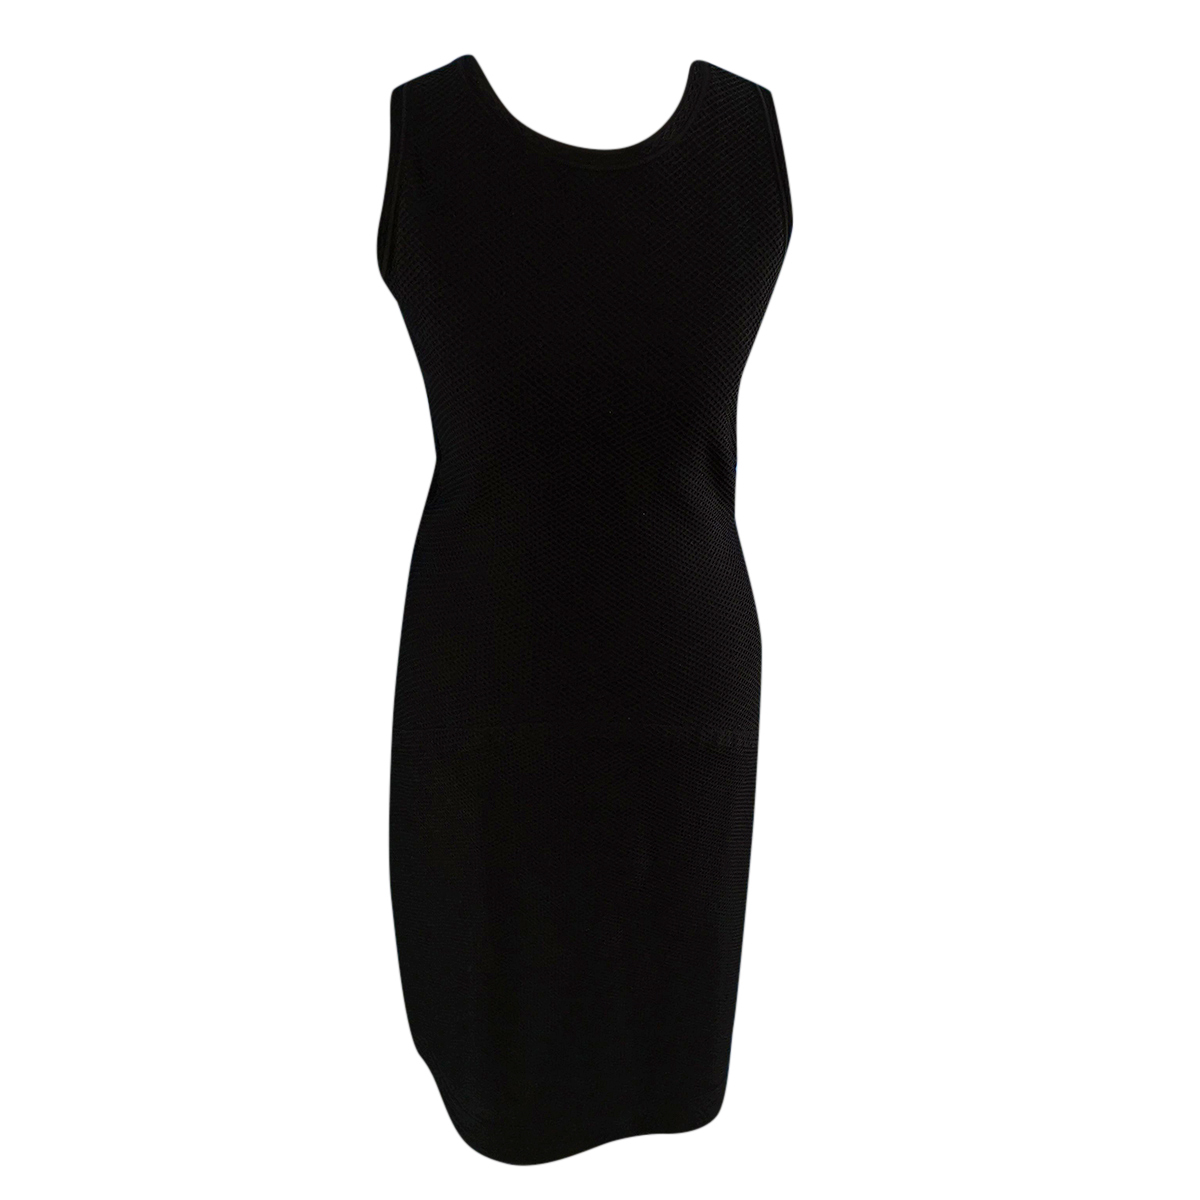 Alaia Black Racer Back Stretch Knit Dress